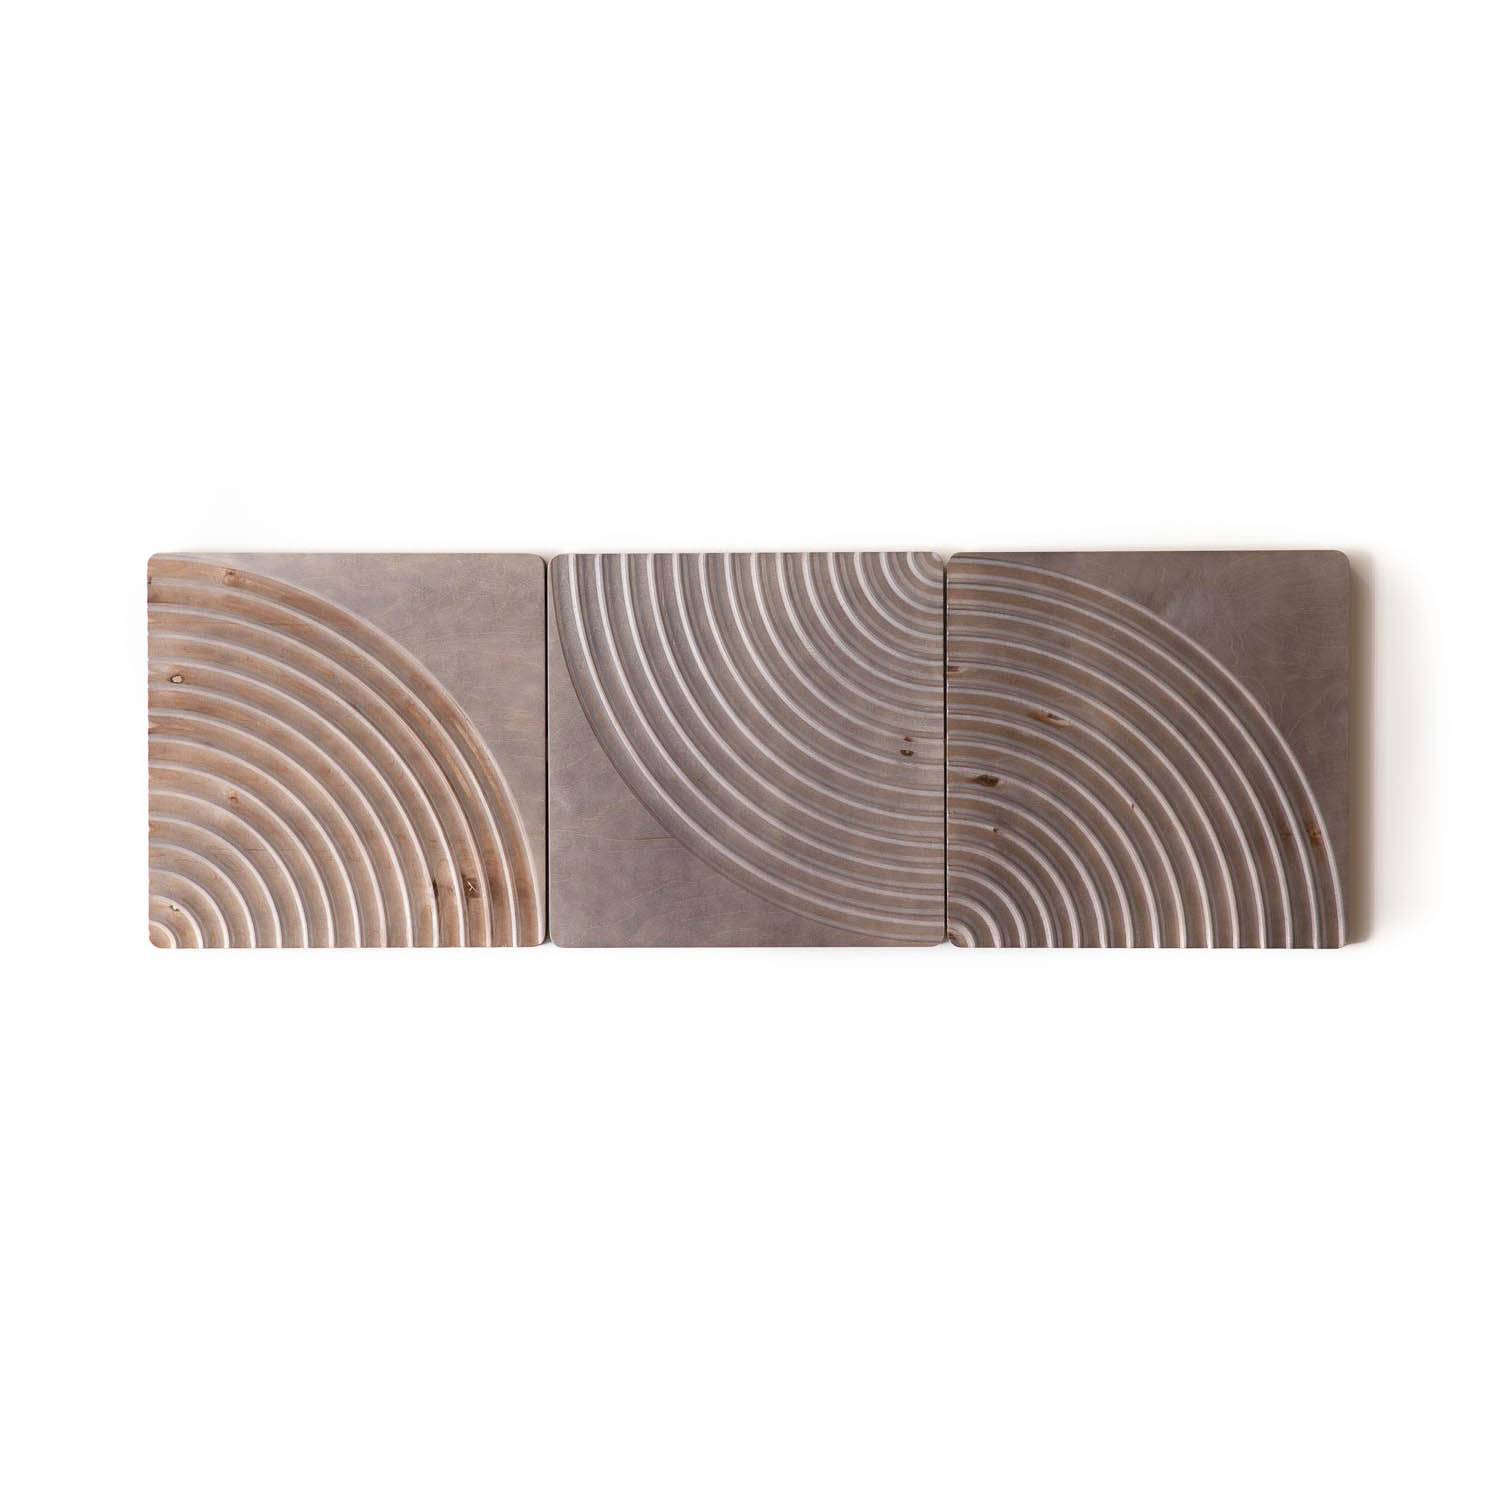 modular-wood-carved-wall-panels